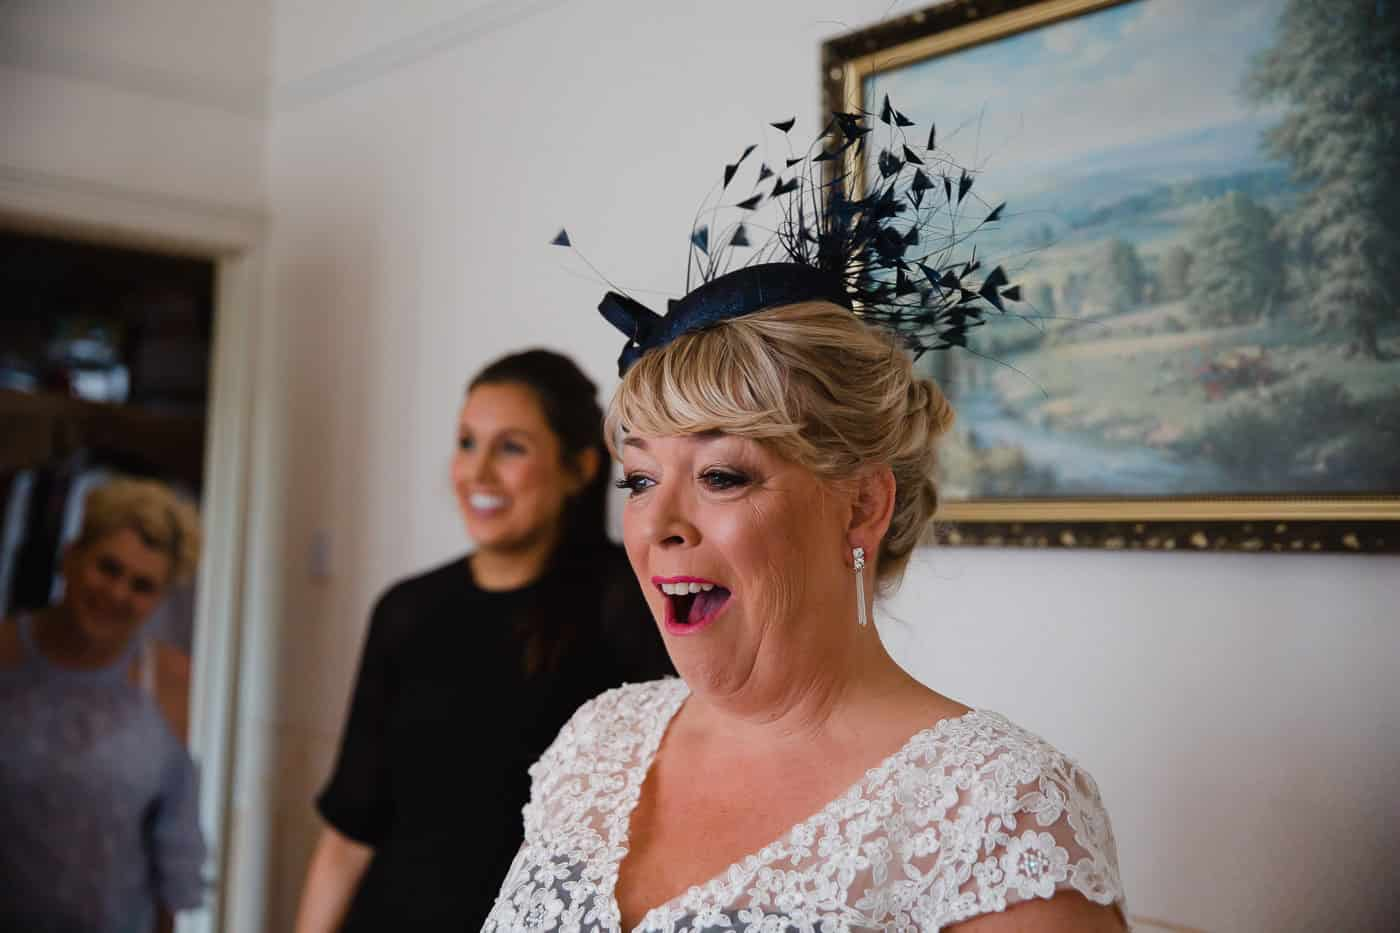 Penarth Wedding Photography - Mother of the bride